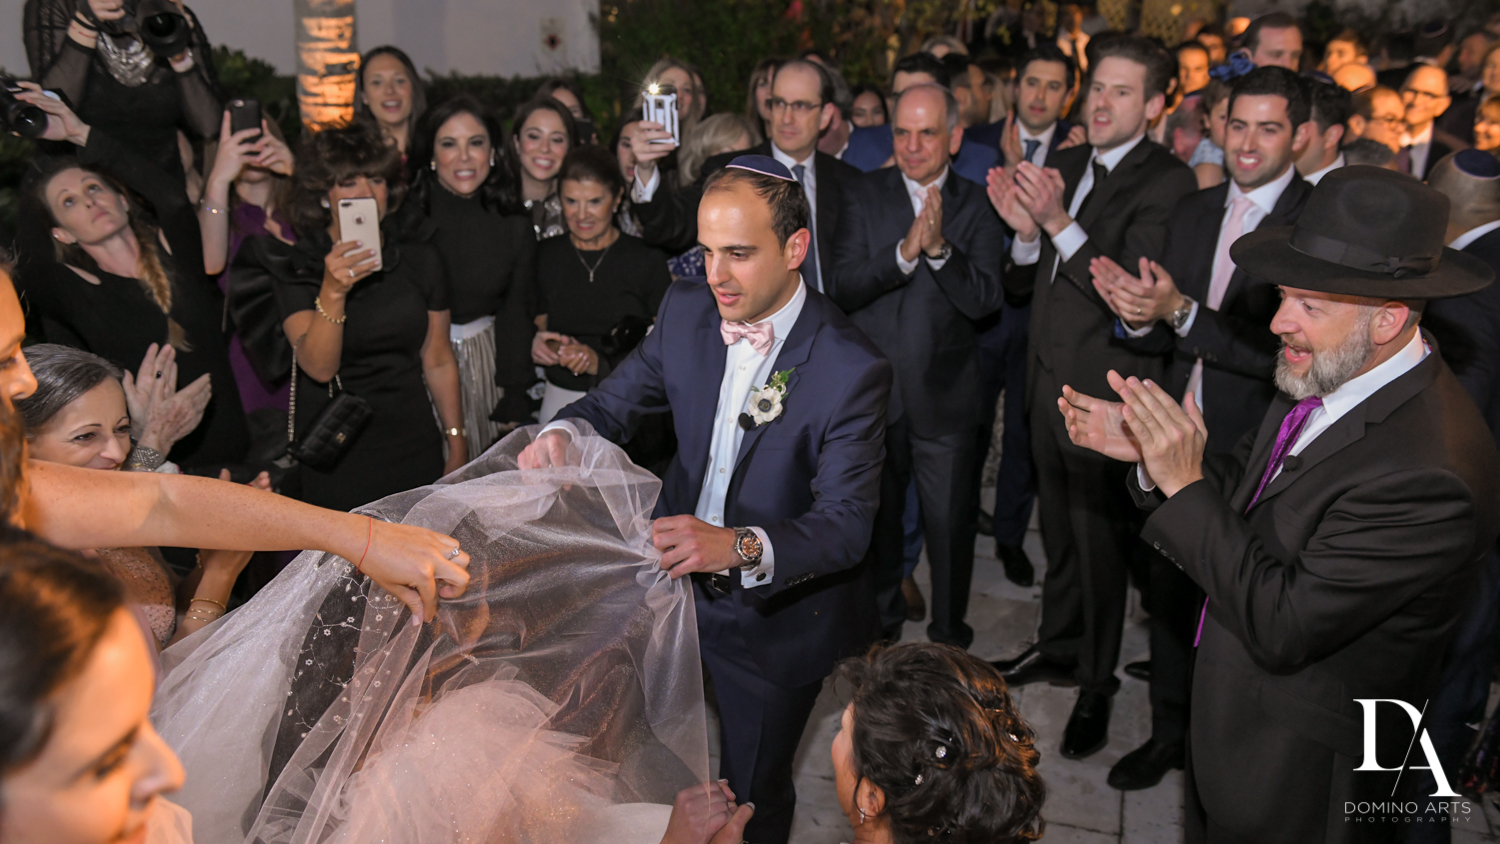 bedeken at Fairy-Tale Wedding at BNai Torah Boca Raton by Domino Arts Photography